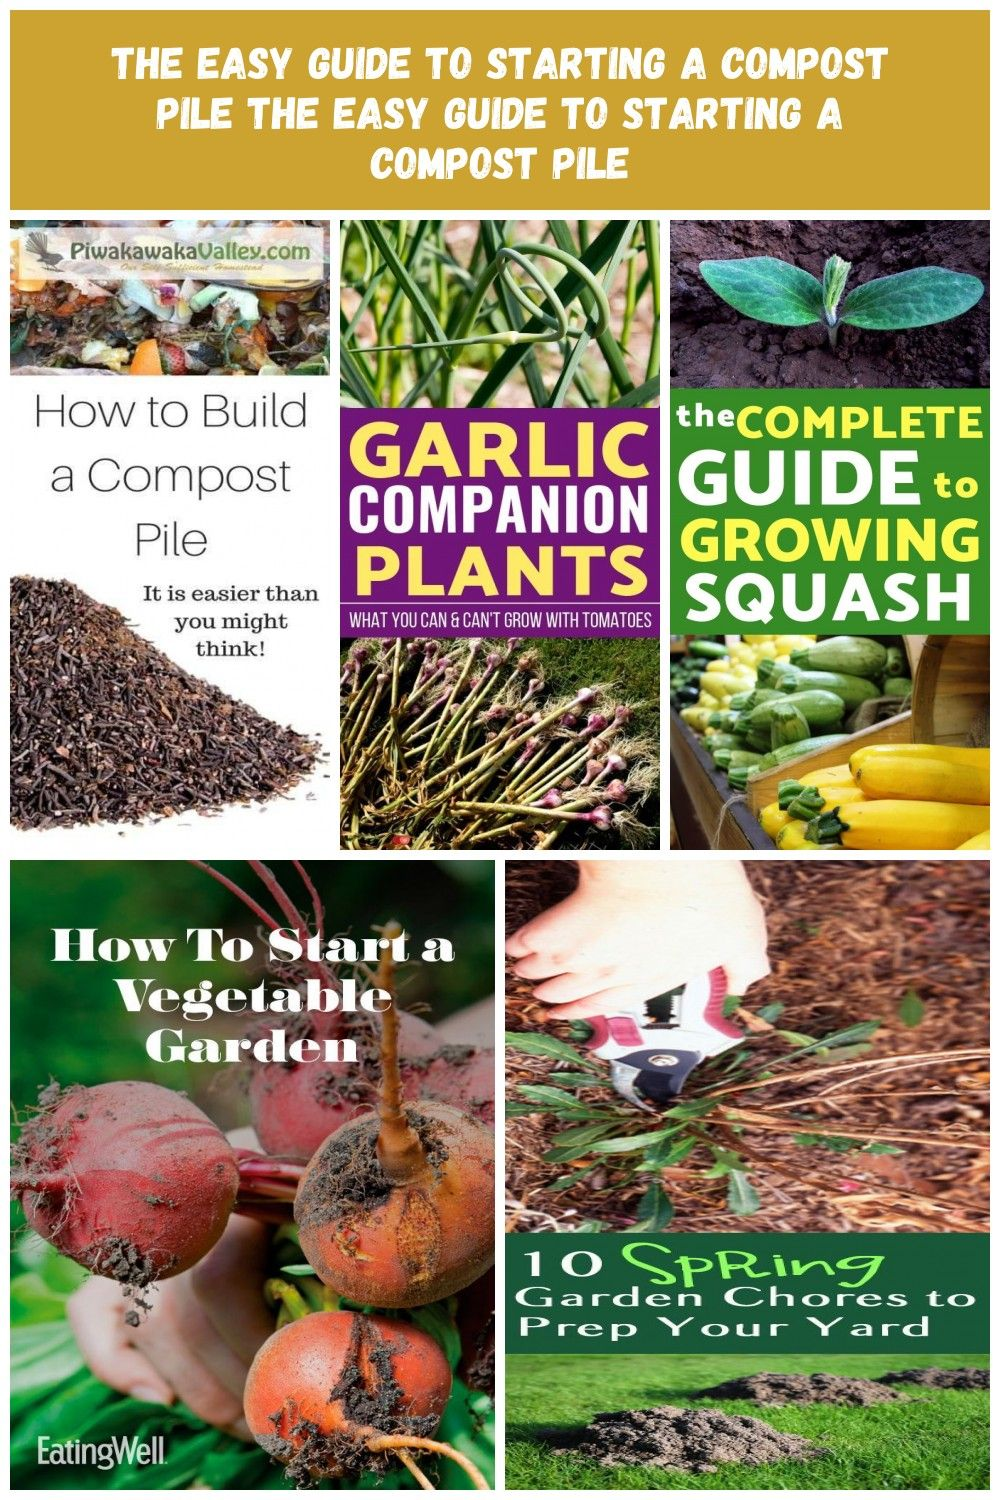 Composting Beginners Starting Compost Guide Easy Pile The